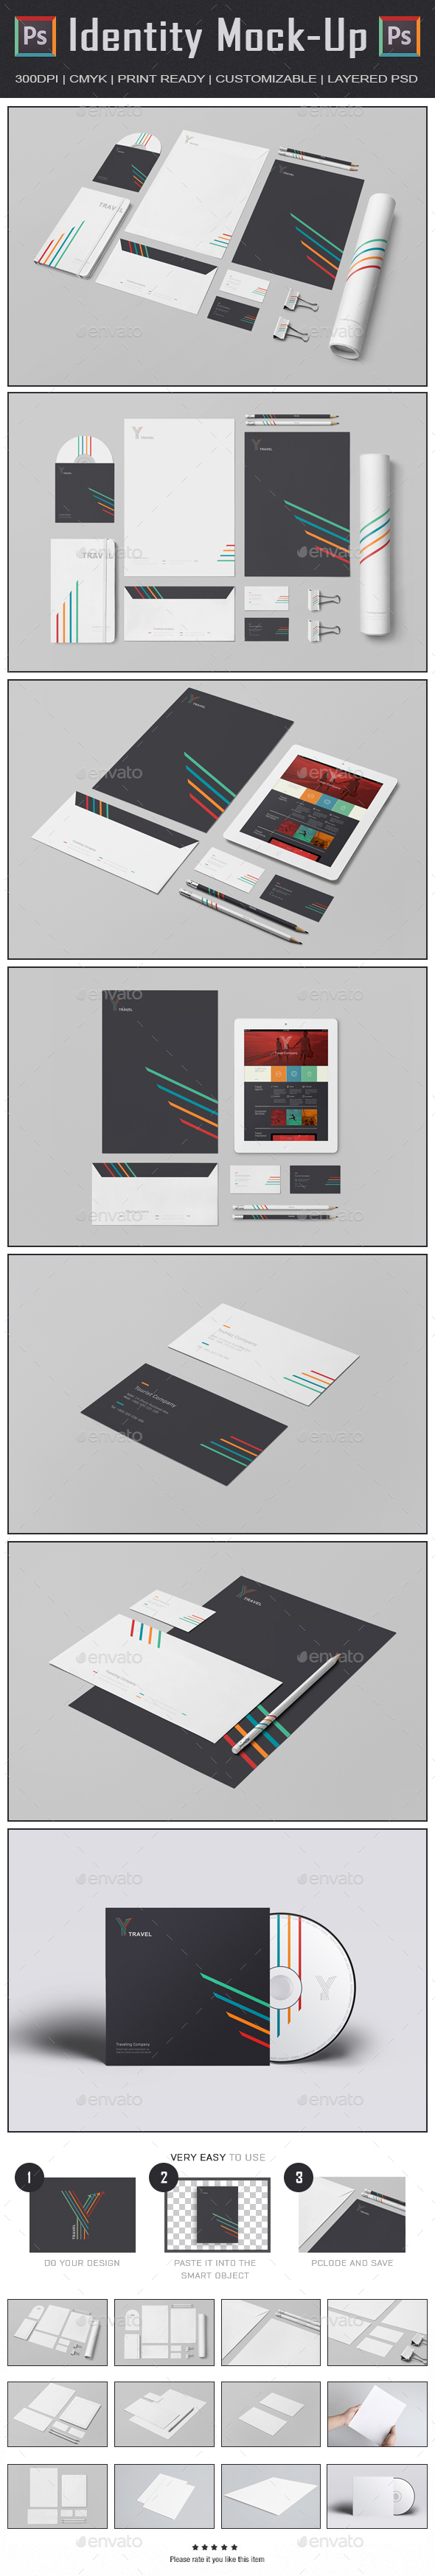 Branding Identity Mock Up III (Stationery)